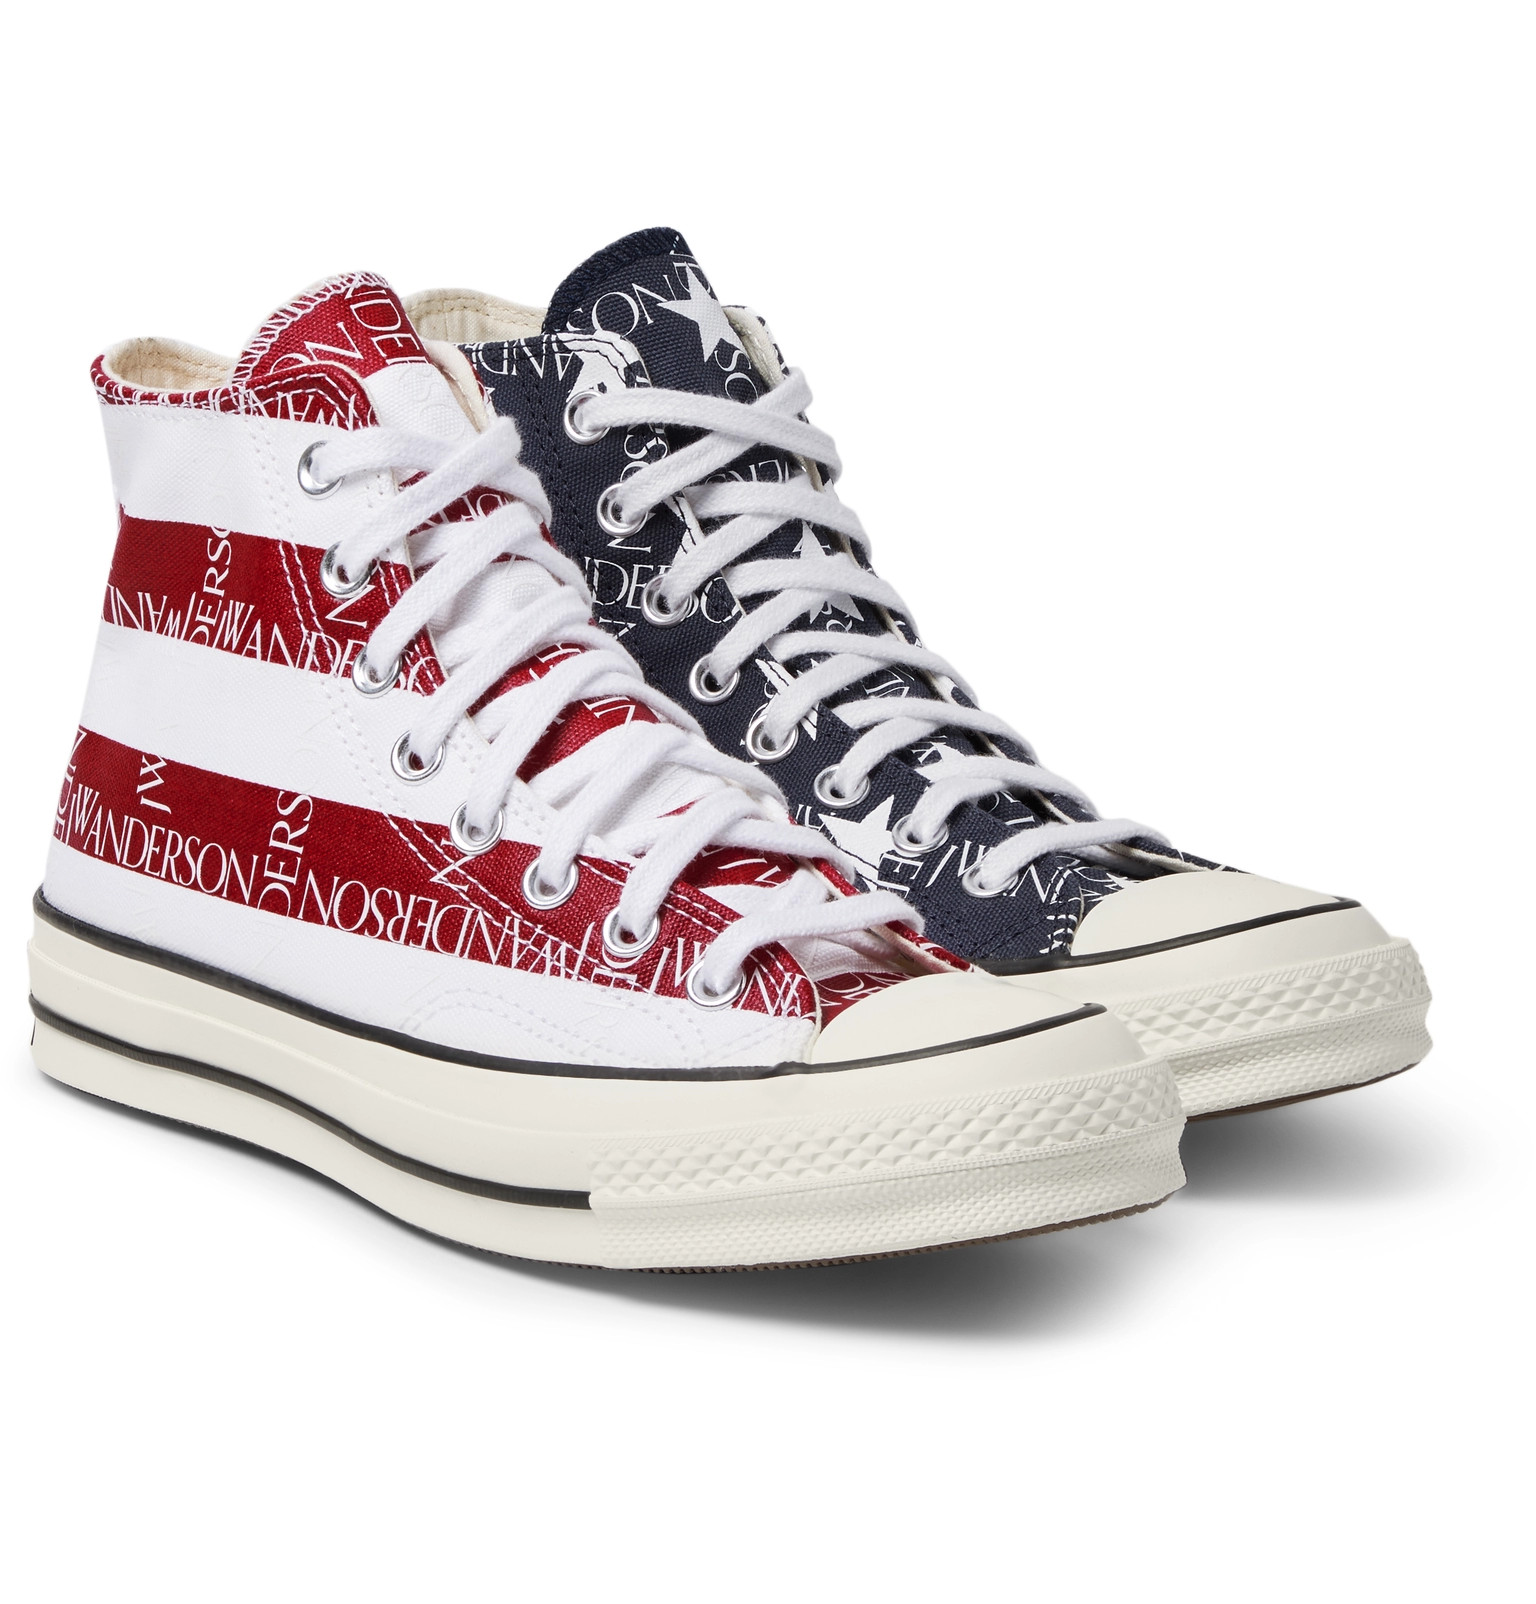 b5746bcb5478ab Converse+ JW Anderson 1970s Chuck Taylor All Star Logo-Print Canvas High-Top  Sneakers